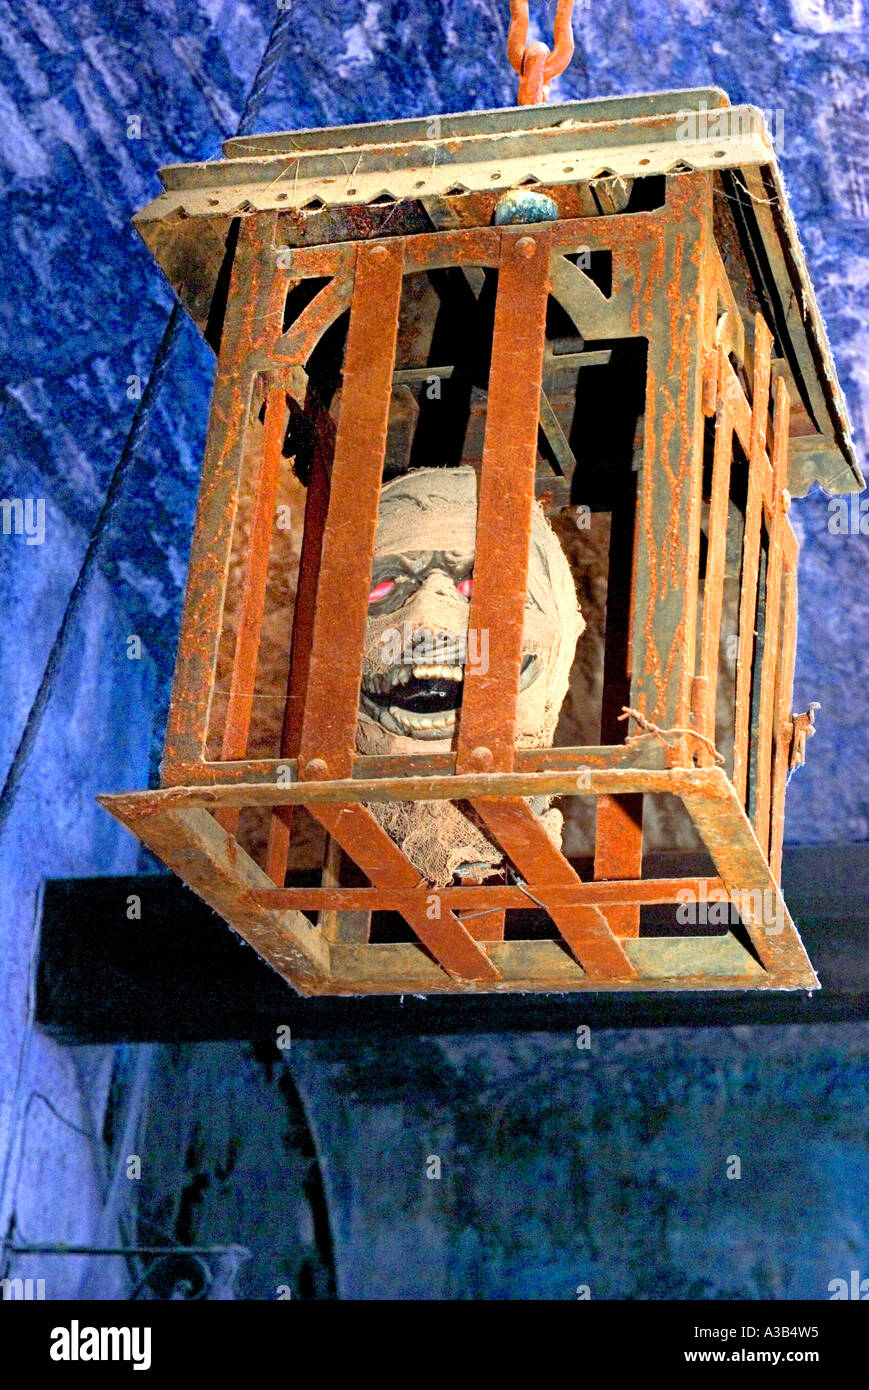 Head in a cage hanging from the ceiling of a torture chamber in the Museum of the Inquisition Guanajuato Mexico - Stock Image